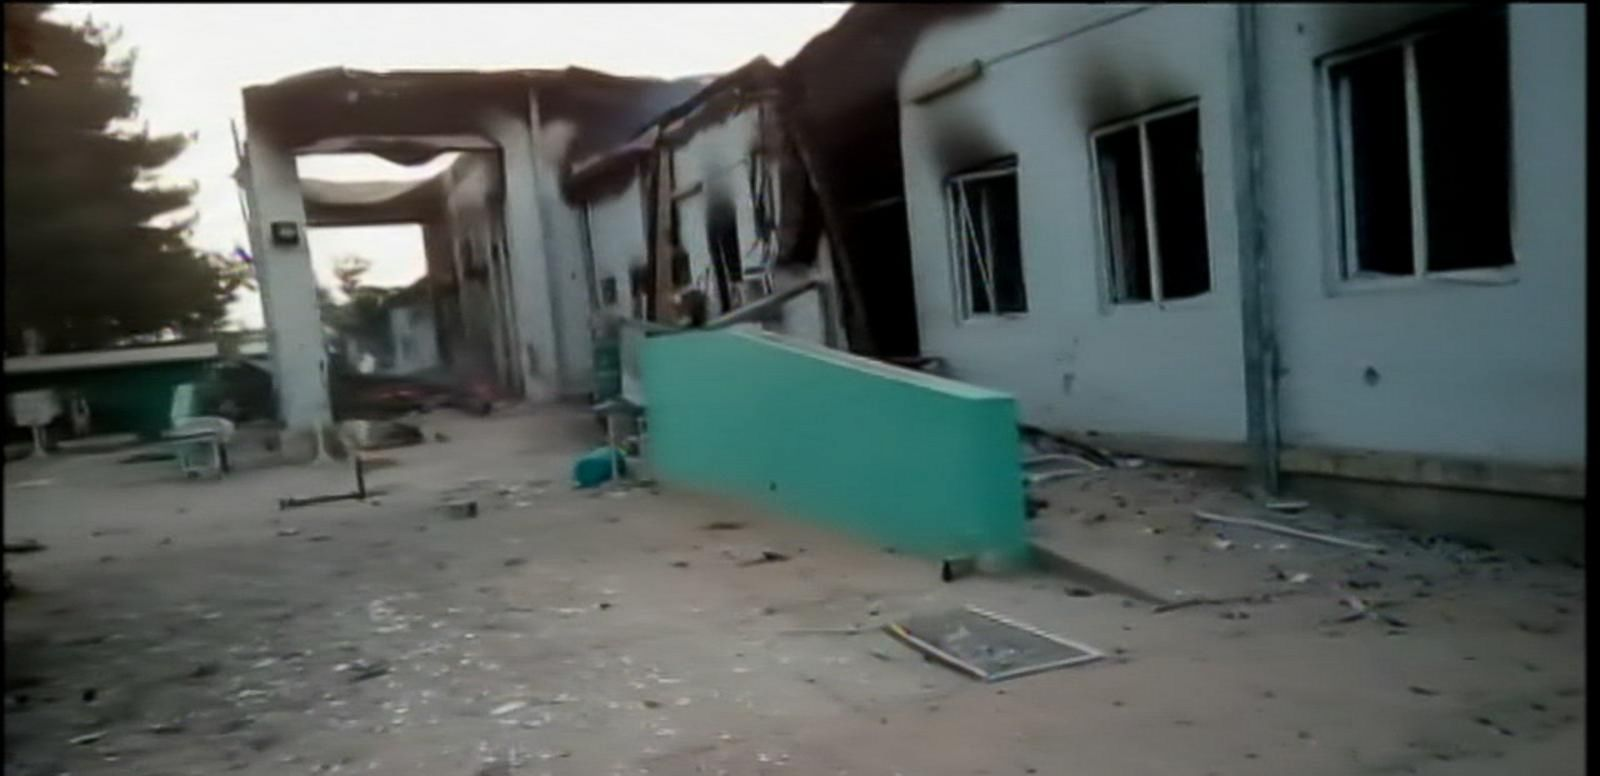 VIDEO: Destruction of a Hospital In Afghanistan Leaves 22 Dead